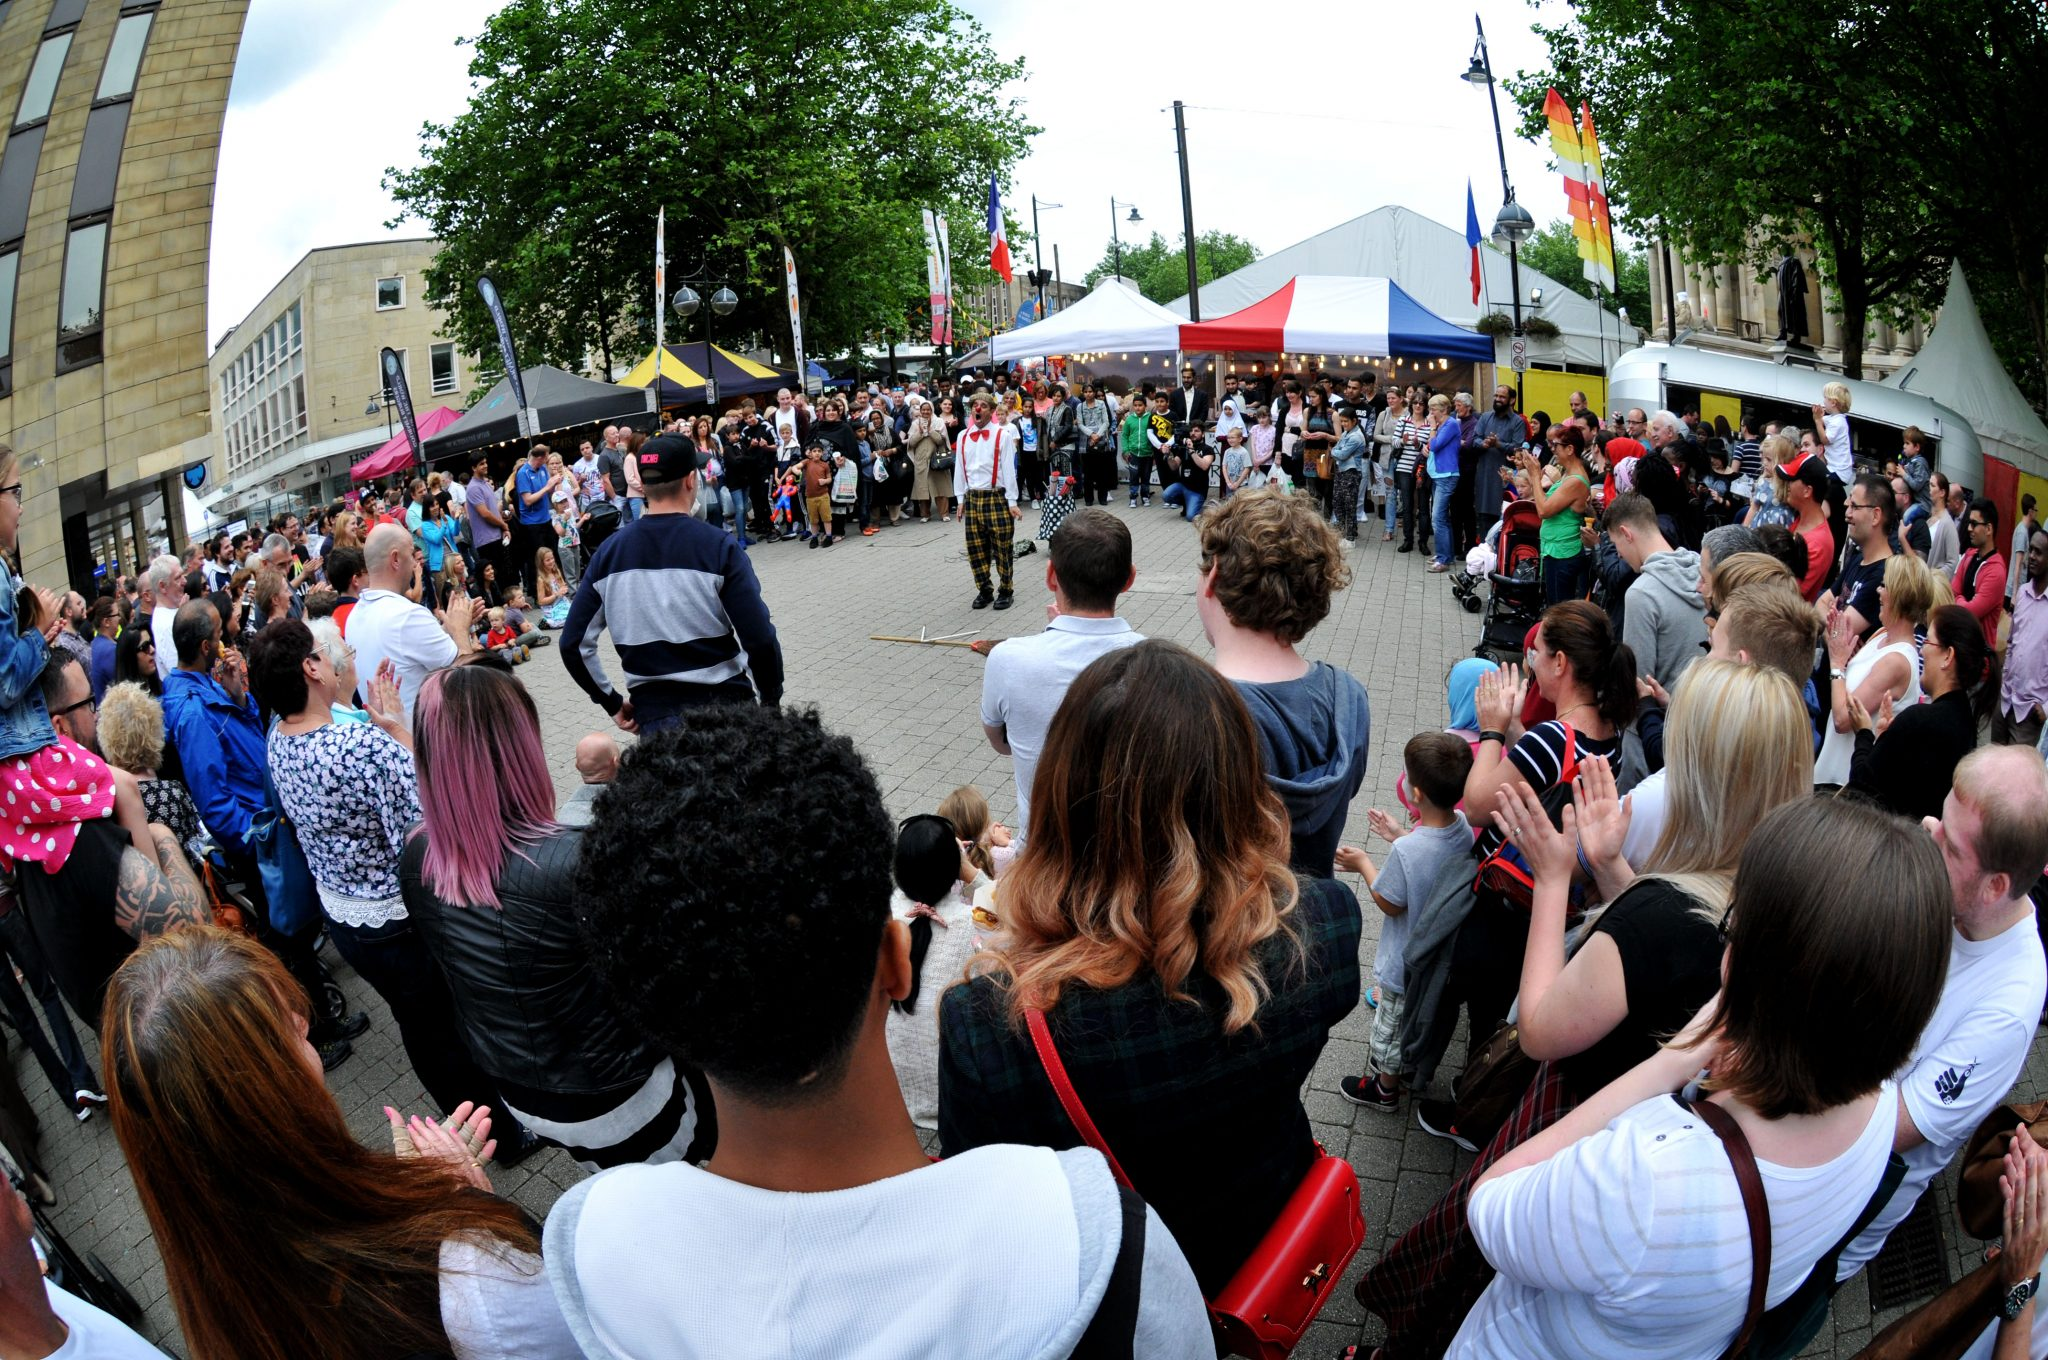 The 10th annual Bolton Food and Drink Festival, Victoria Square, Bolton, Lancashire. Street entertainer Pedro Tochas attracts a large crowd. Picture by Paul Heyes, Sunday August 30, 2015.